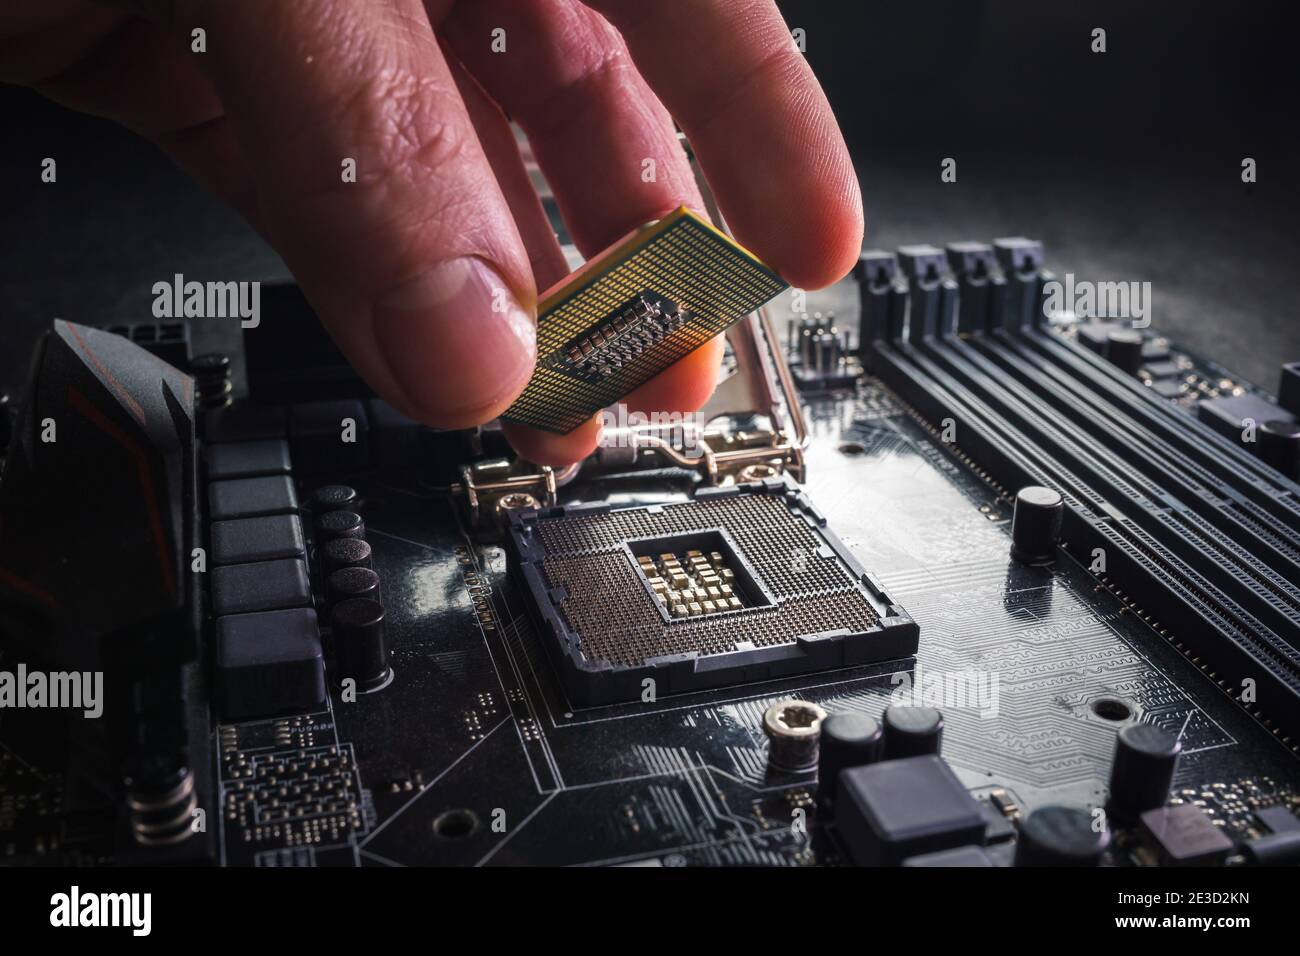 Technician plug in CPU microprocessor to motherboard socket. Workshop background. PC upgrade or repair concept. Stock Photo